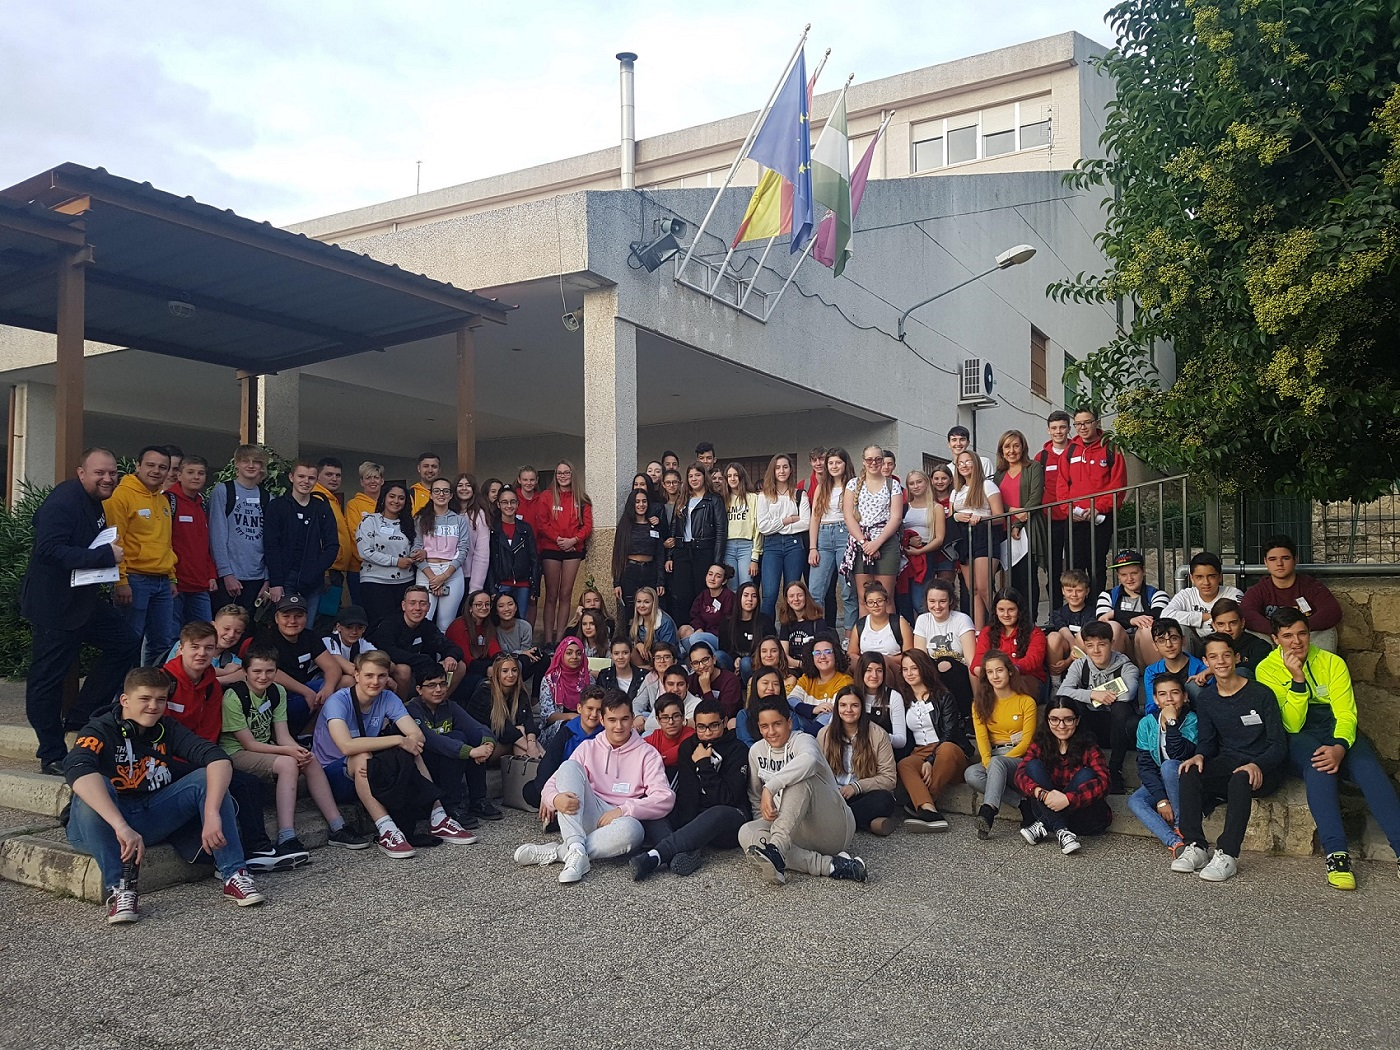 Felpham Community College to Jaén